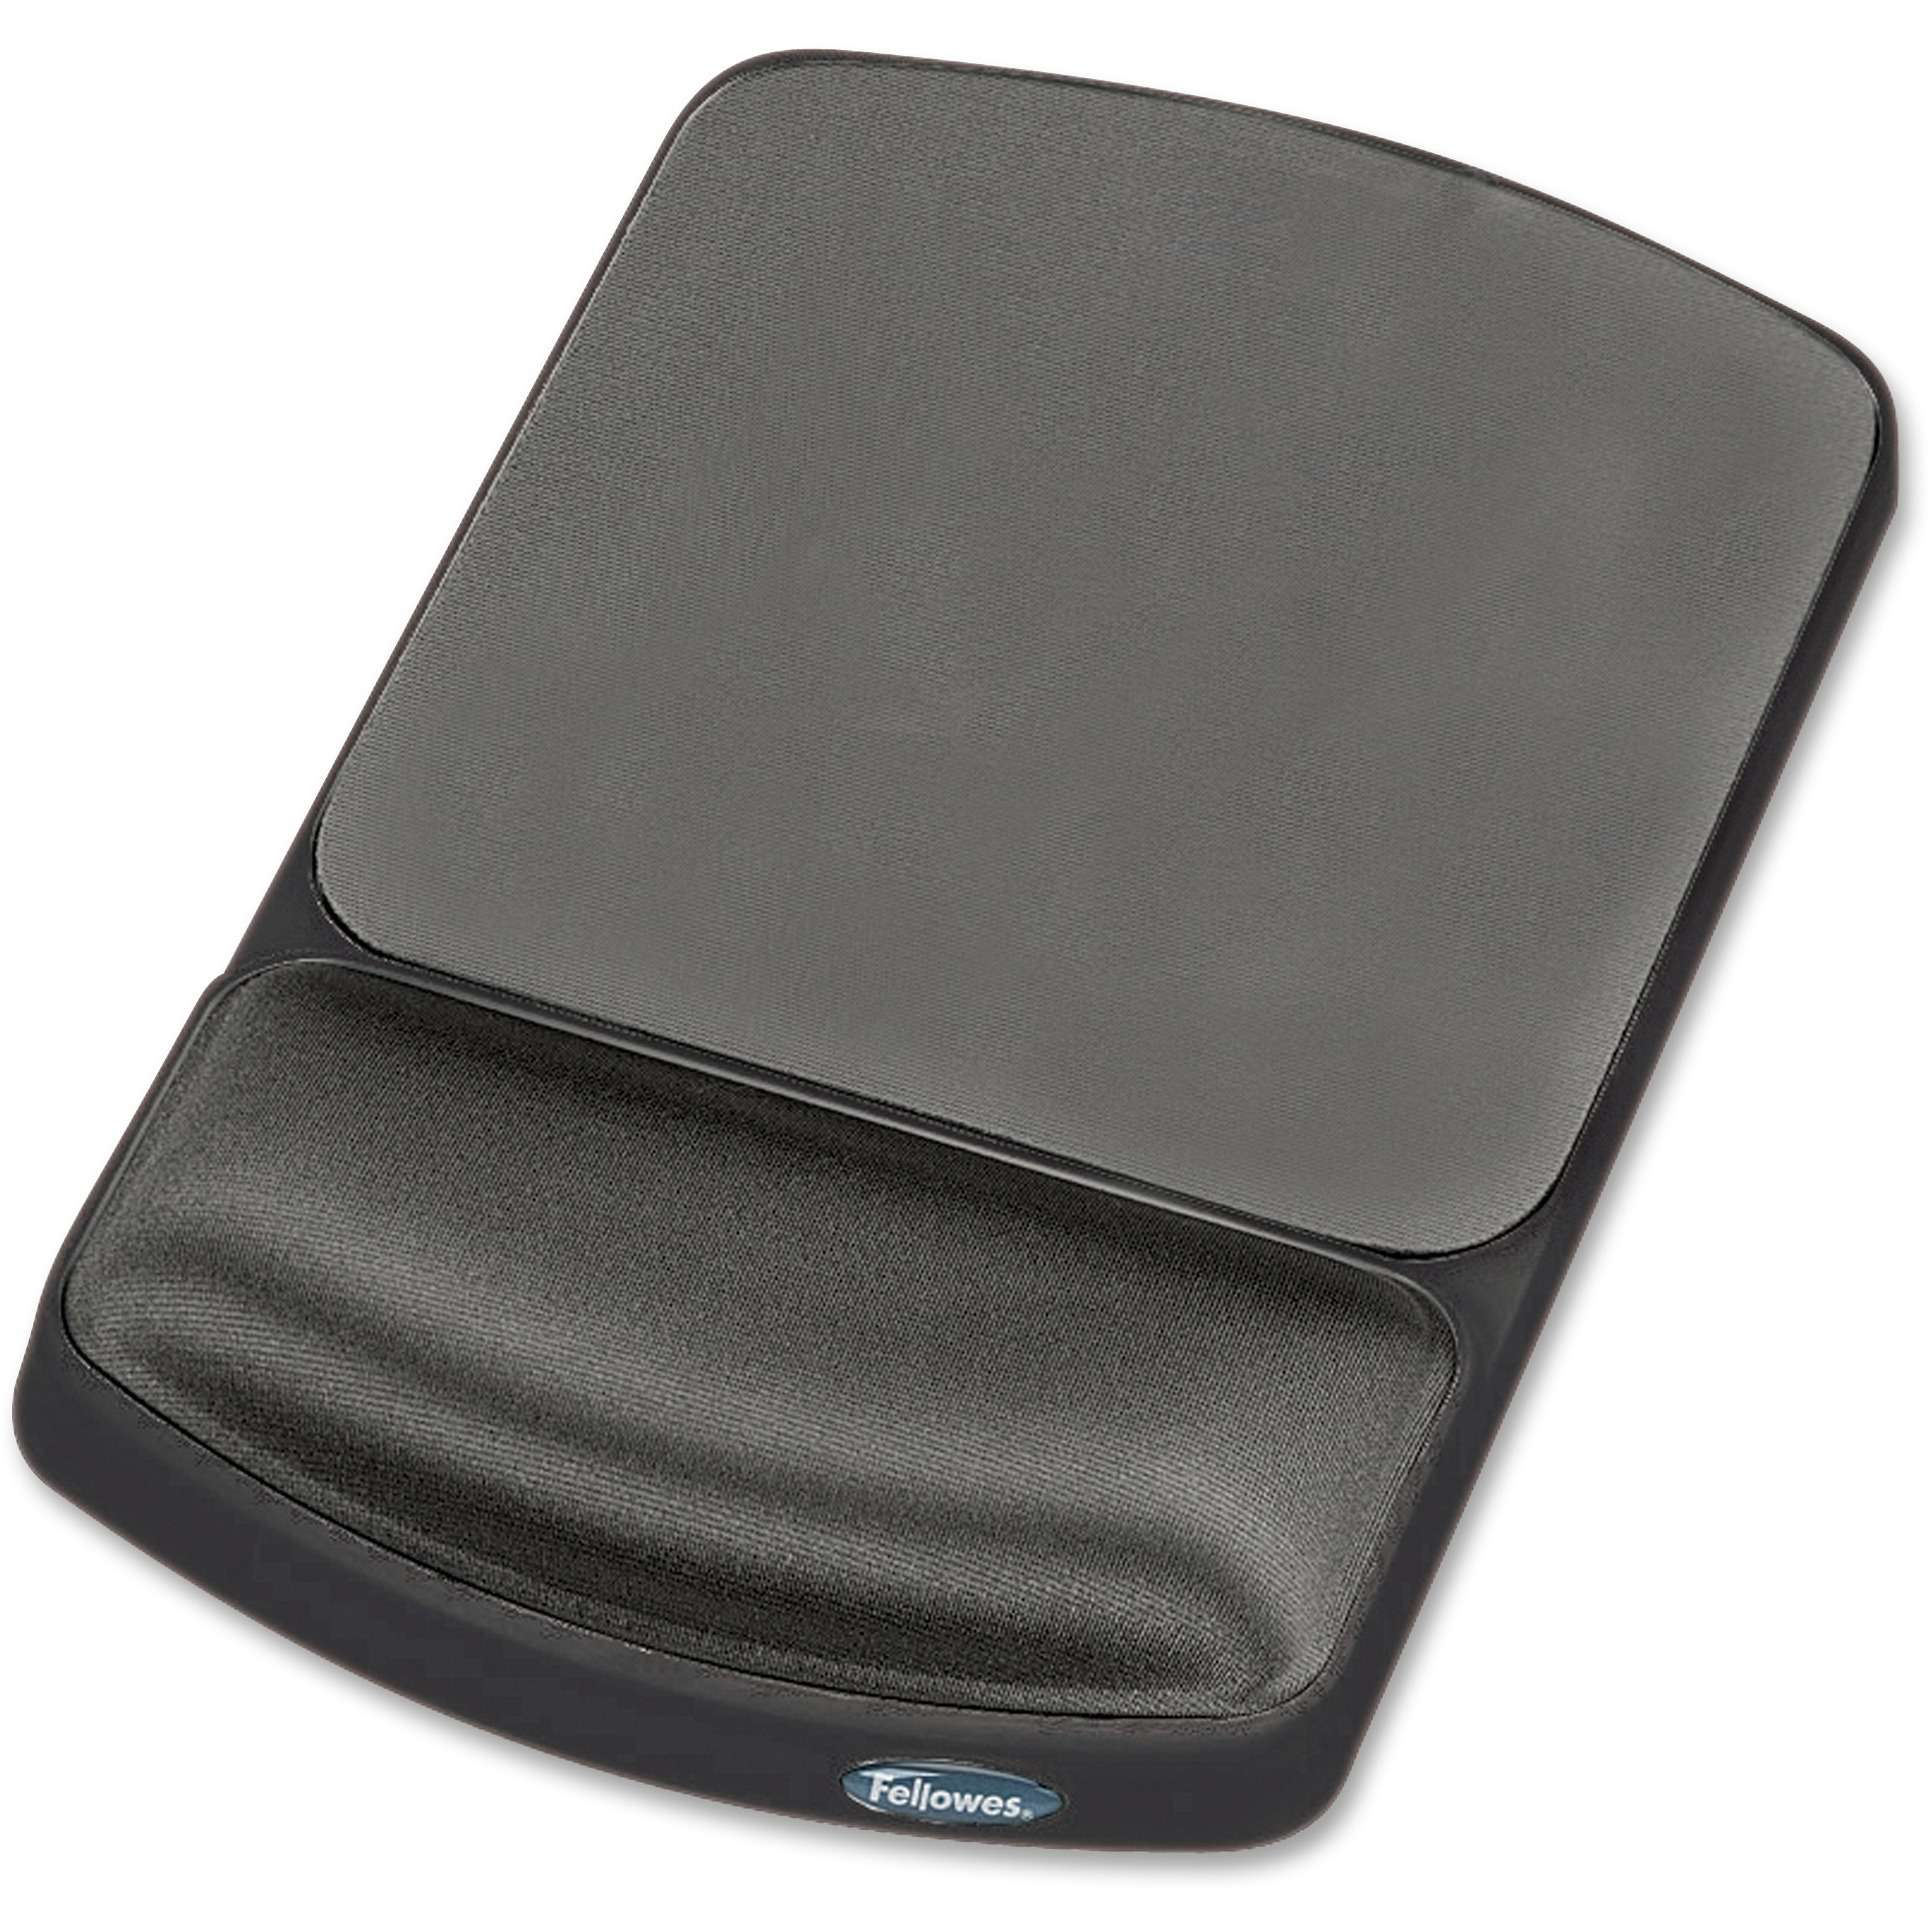 Fellowes, FEL91741, Gel Wrist Rest and Mouse Pad - Graphite/Platinum, 1, Platinum,Graphite